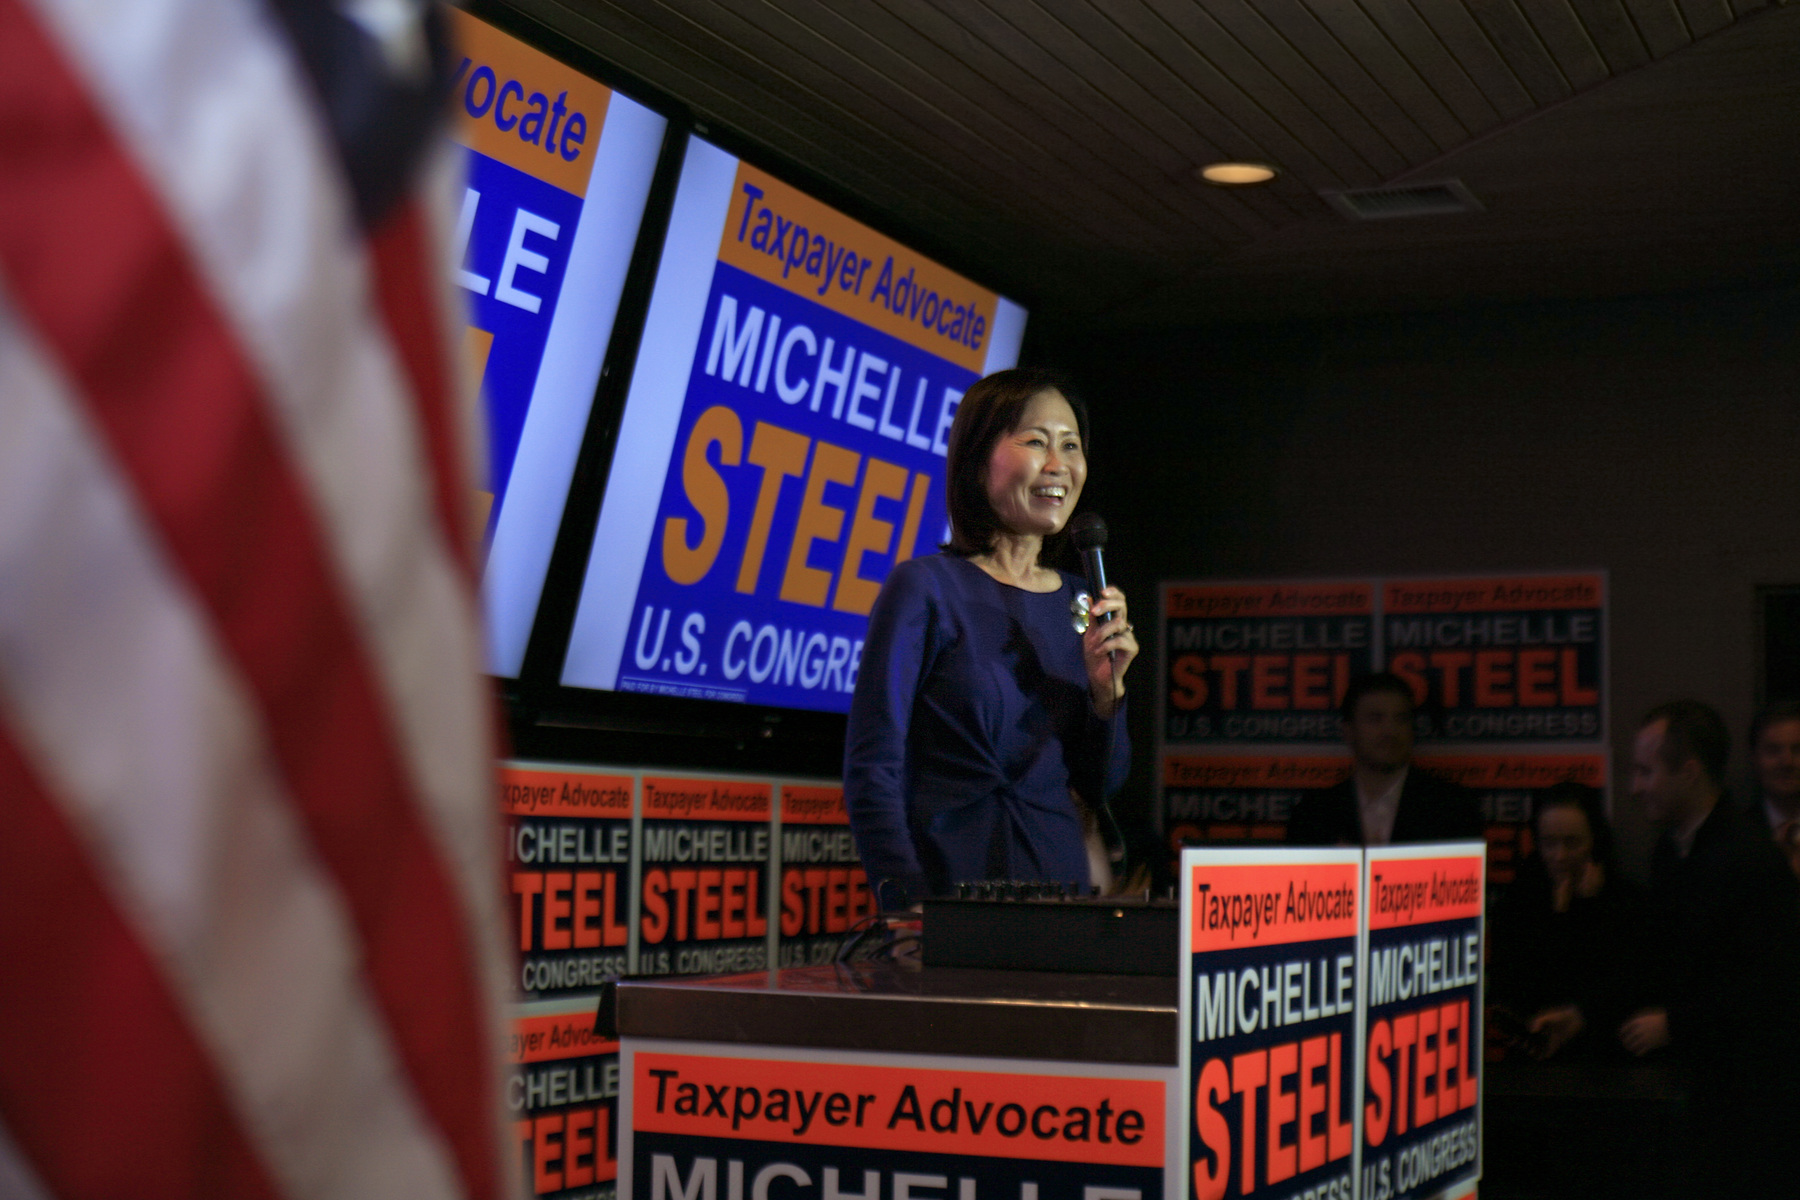 Orange County Supervisor and 48th Congressional District candidate, Michelle Steel, speaks at a Republican Party of Orange County event at CP Restaurant in Newport Beach.